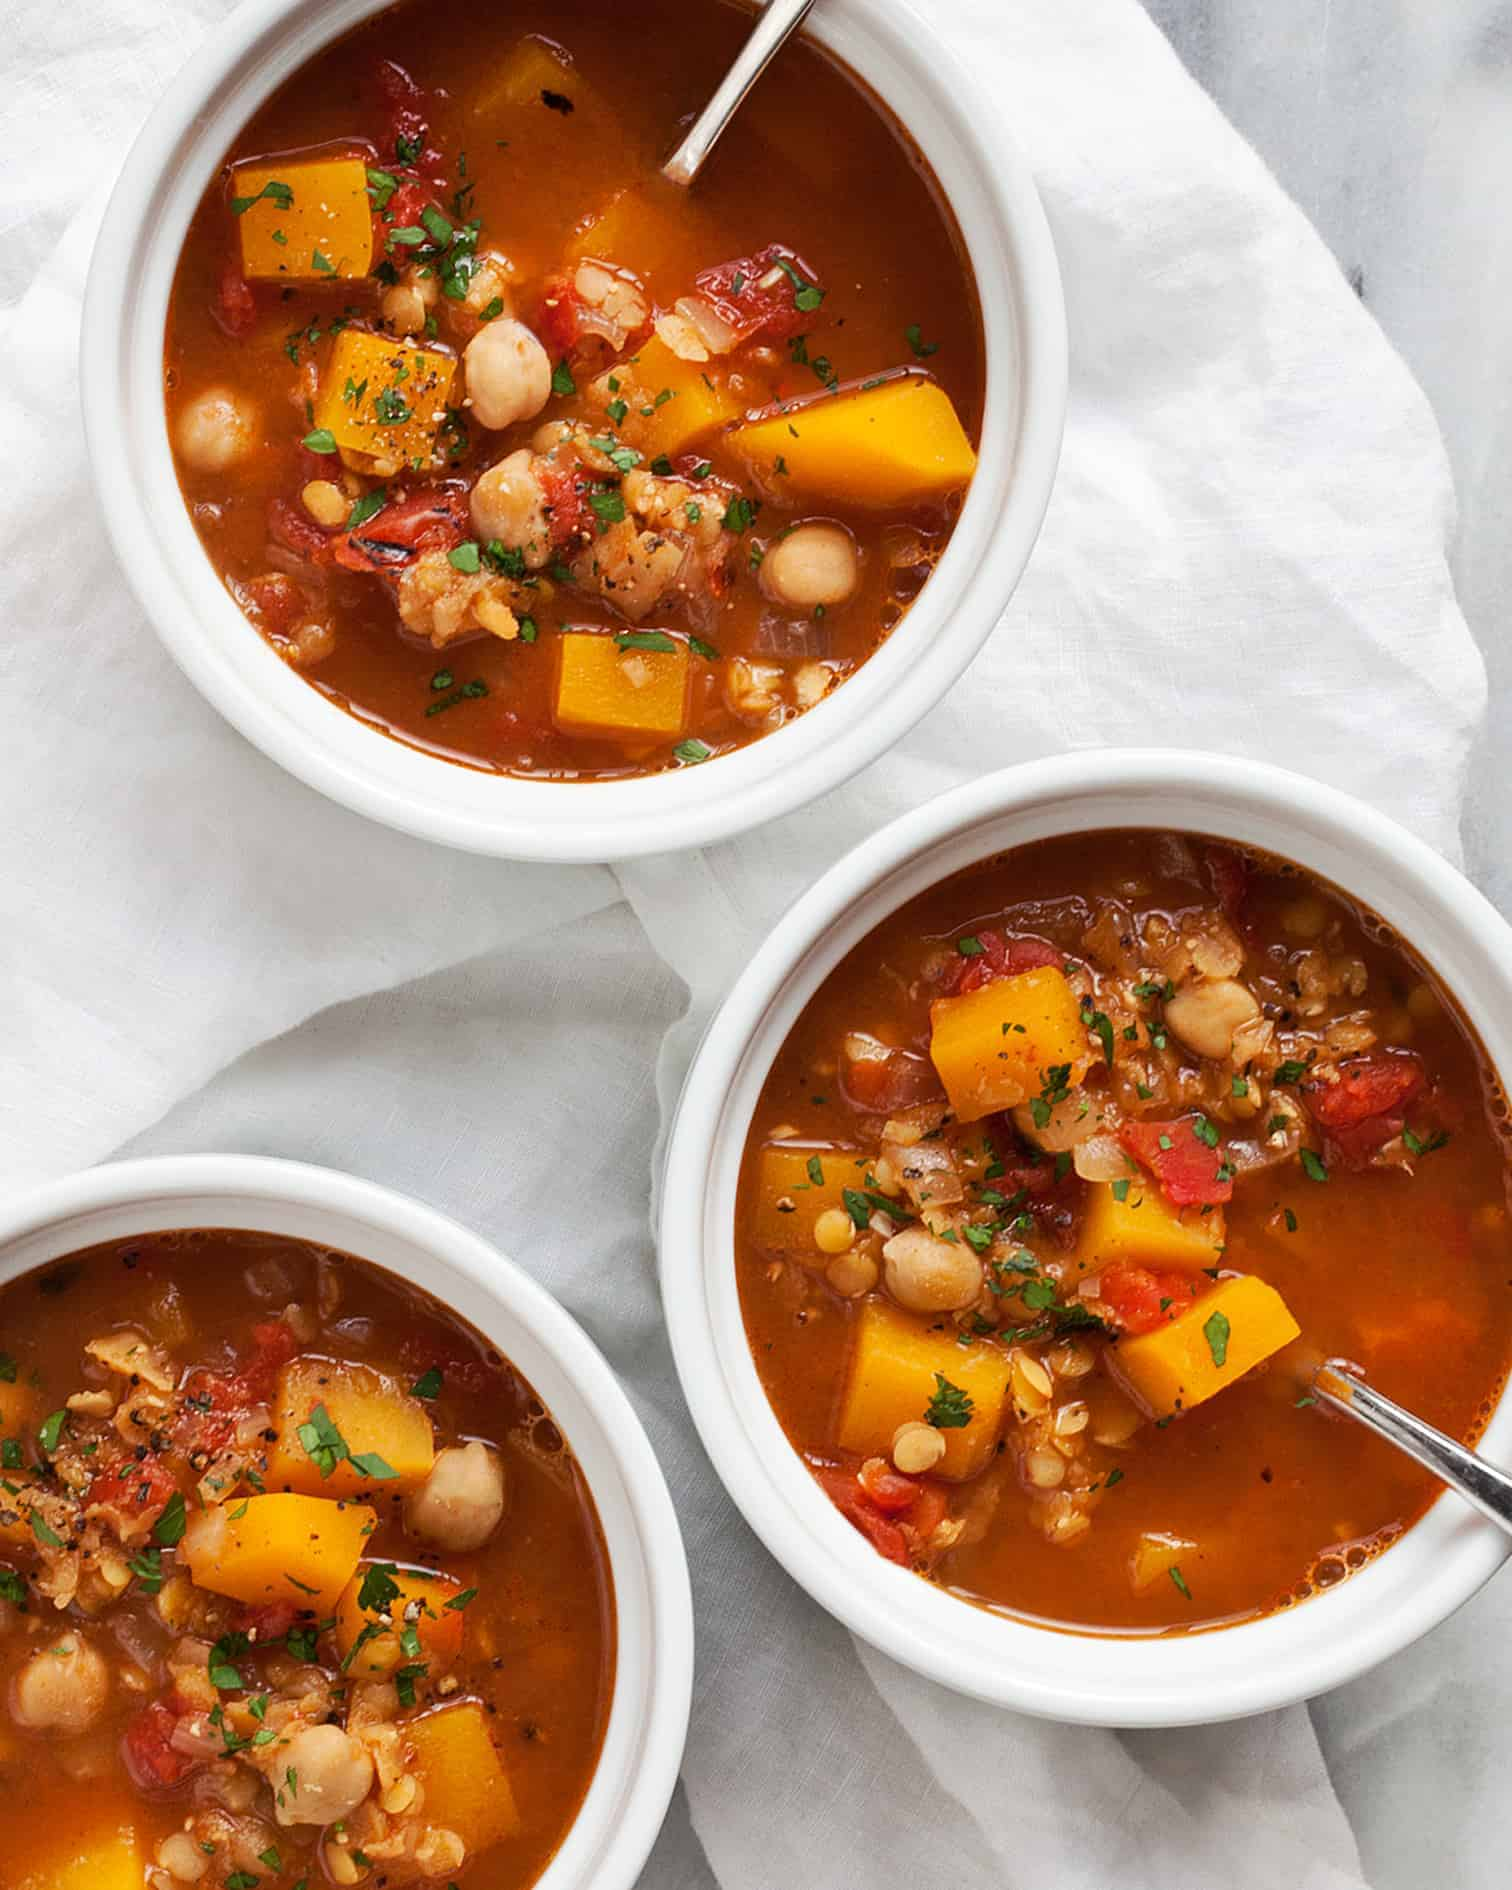 Spicy Red Lentil Chickpea Soup With Butternut Squash Last Ingredient